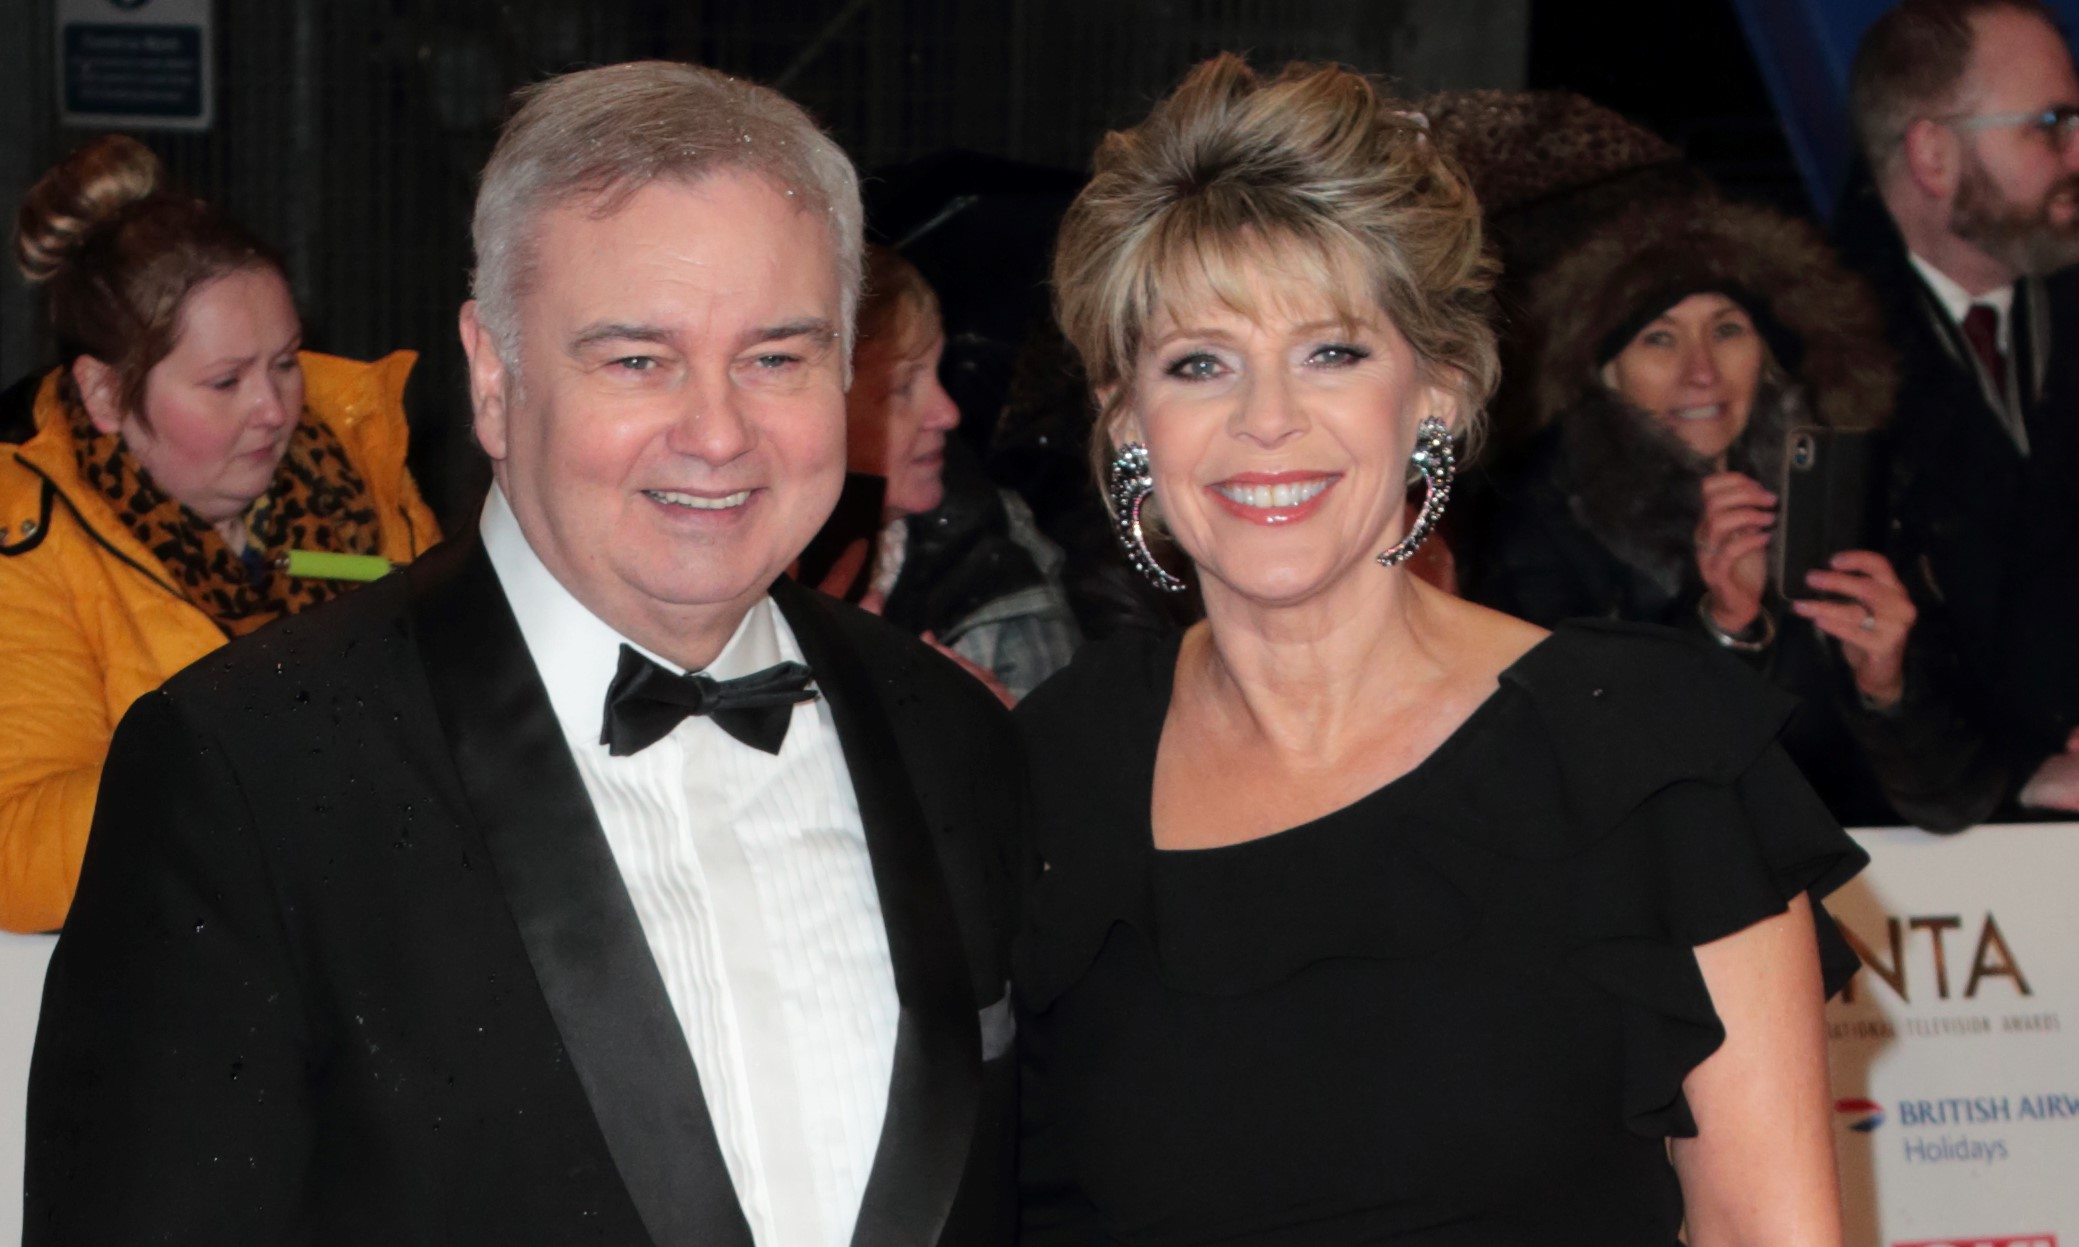 Eamonn Holmes pays tribute Ruth Langsford's late sister on wedding anniversary